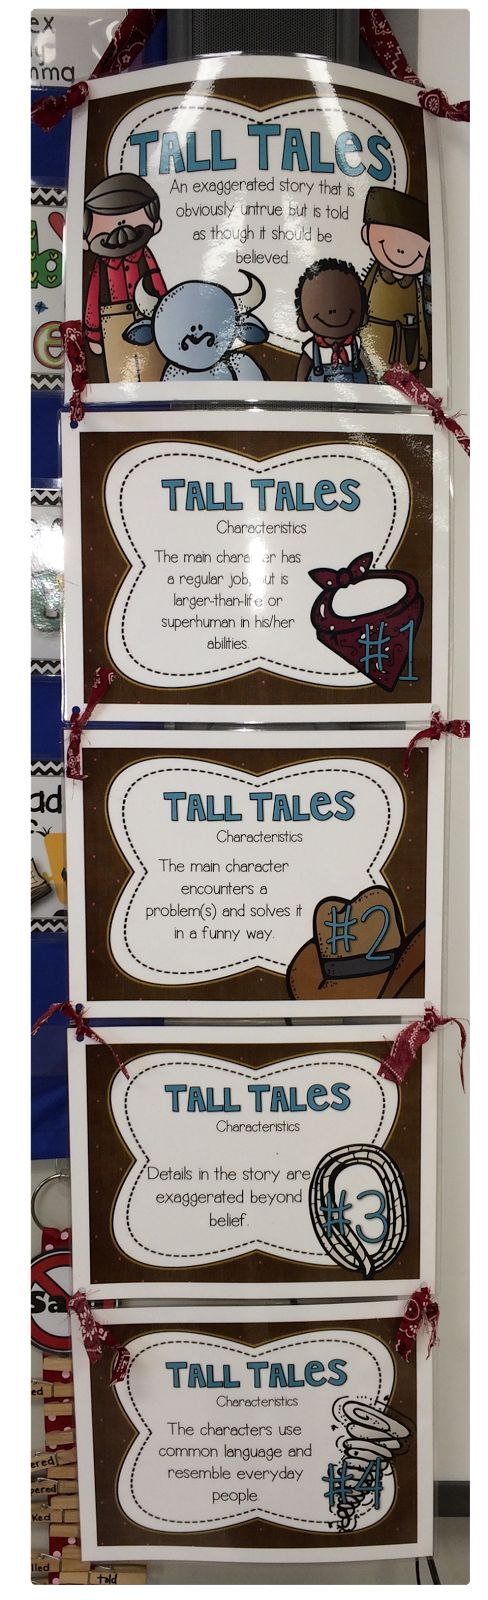 Spring Break is finally here and I am looking forward to some much needed R&R. My class learned all about Tall Tales before the break and I...